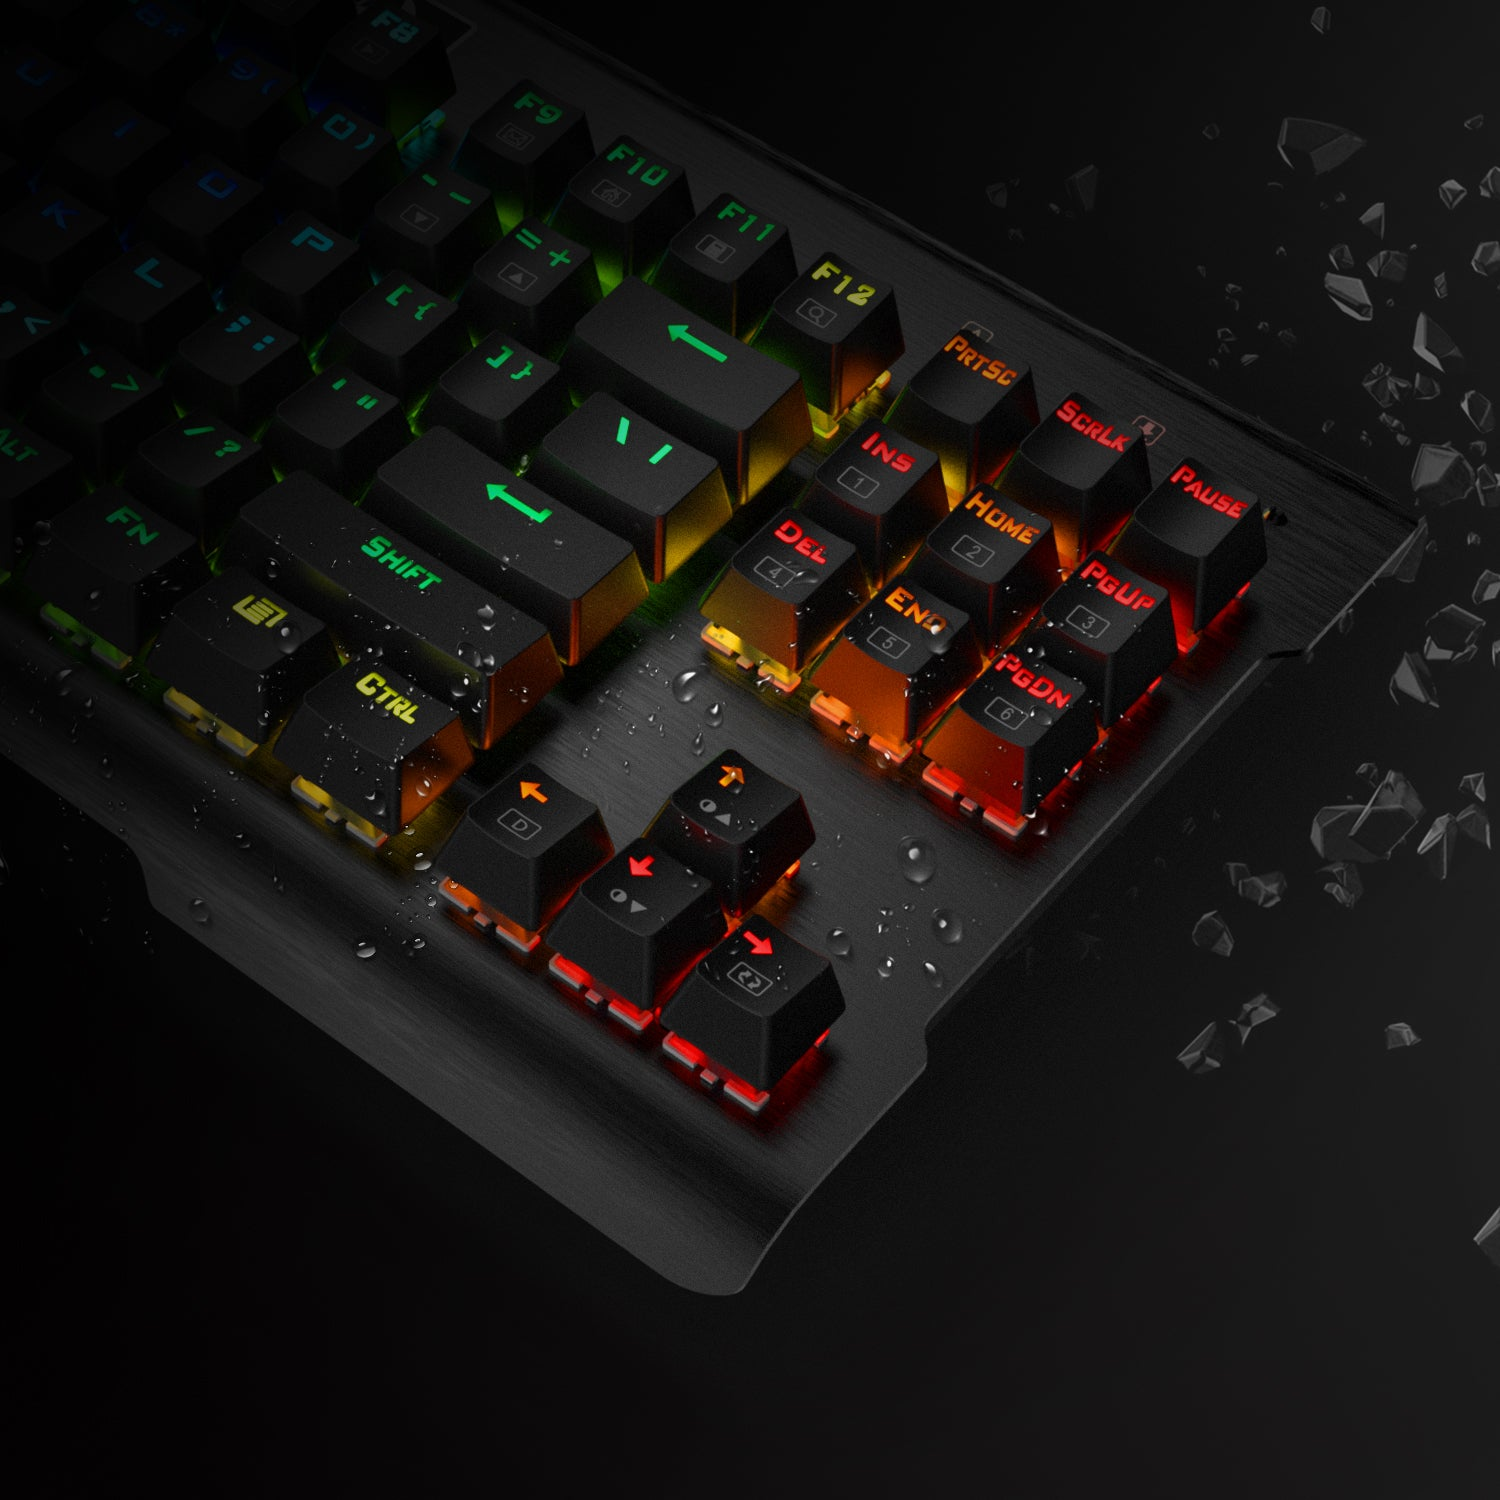 Redragon K561 VISNU Mechanical Gaming Keyboard, Anti-ghosting 87 Keys, RGB Backlit, Wired Compact Keyboard with Clicky Blue Switches for Laptop, Windows